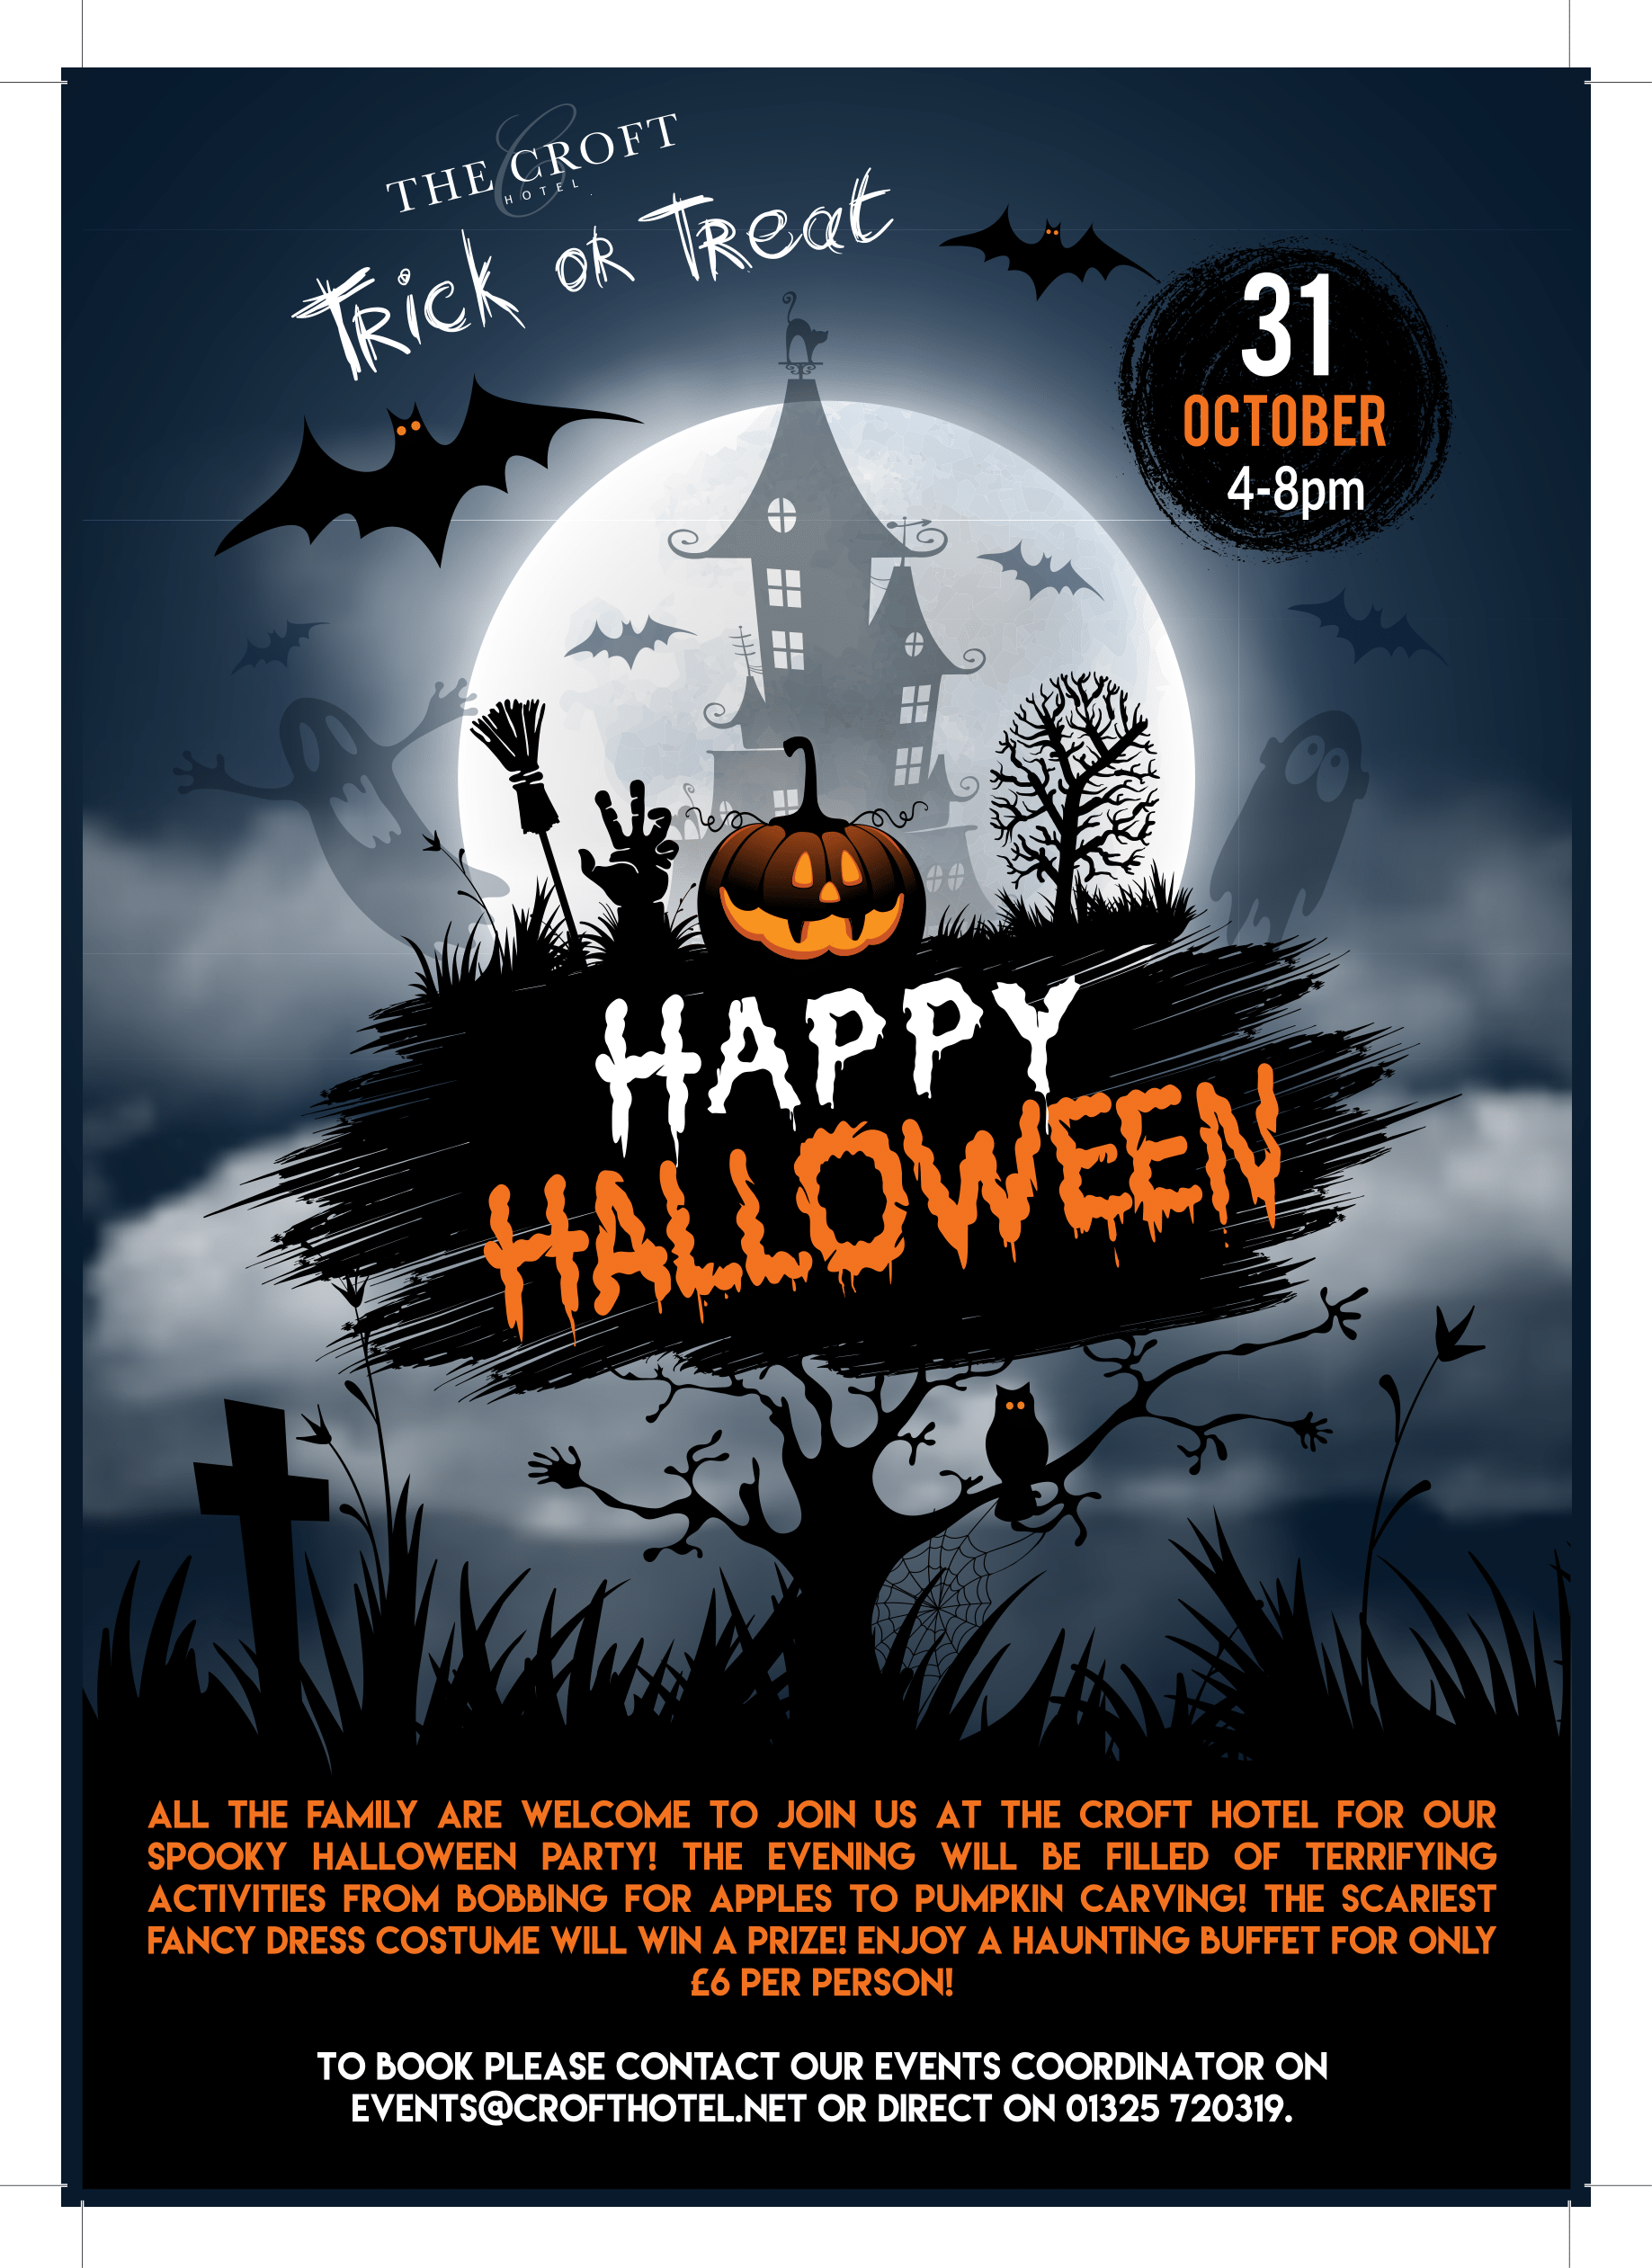 Halloween events at The Croft hotel